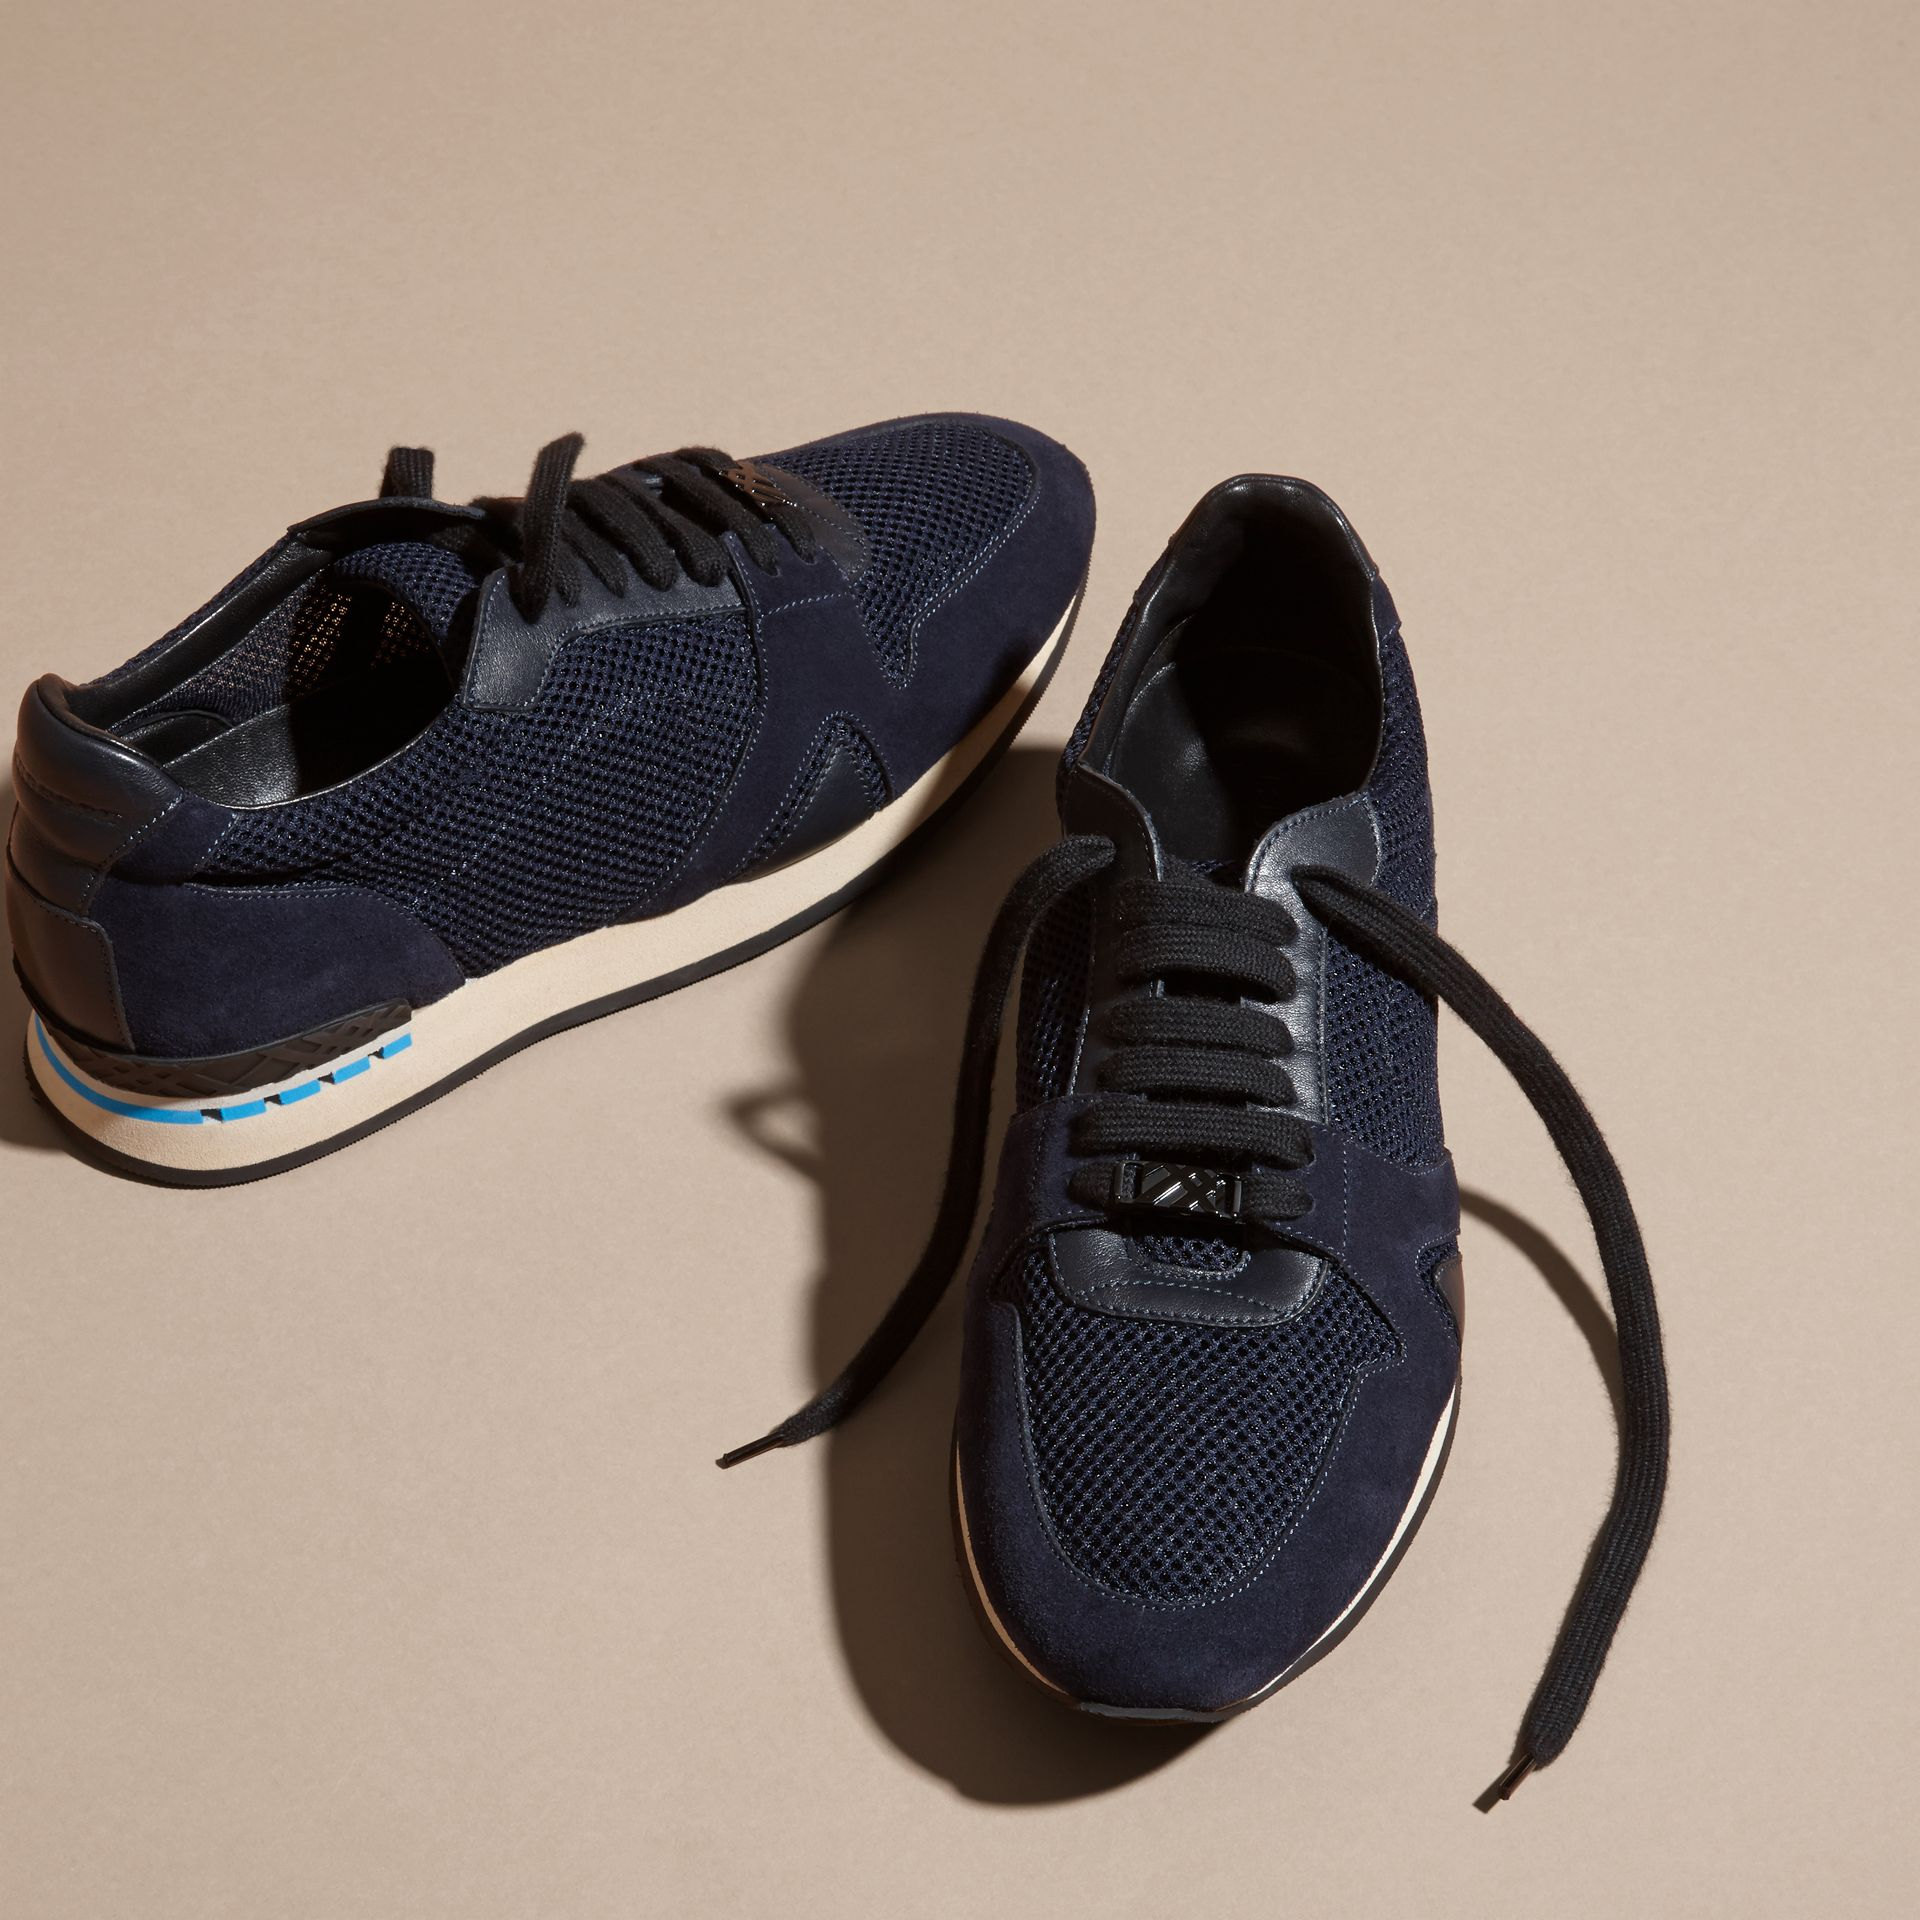 Navy The Field Sneaker in Suede and Mesh Navy - gallery image 3